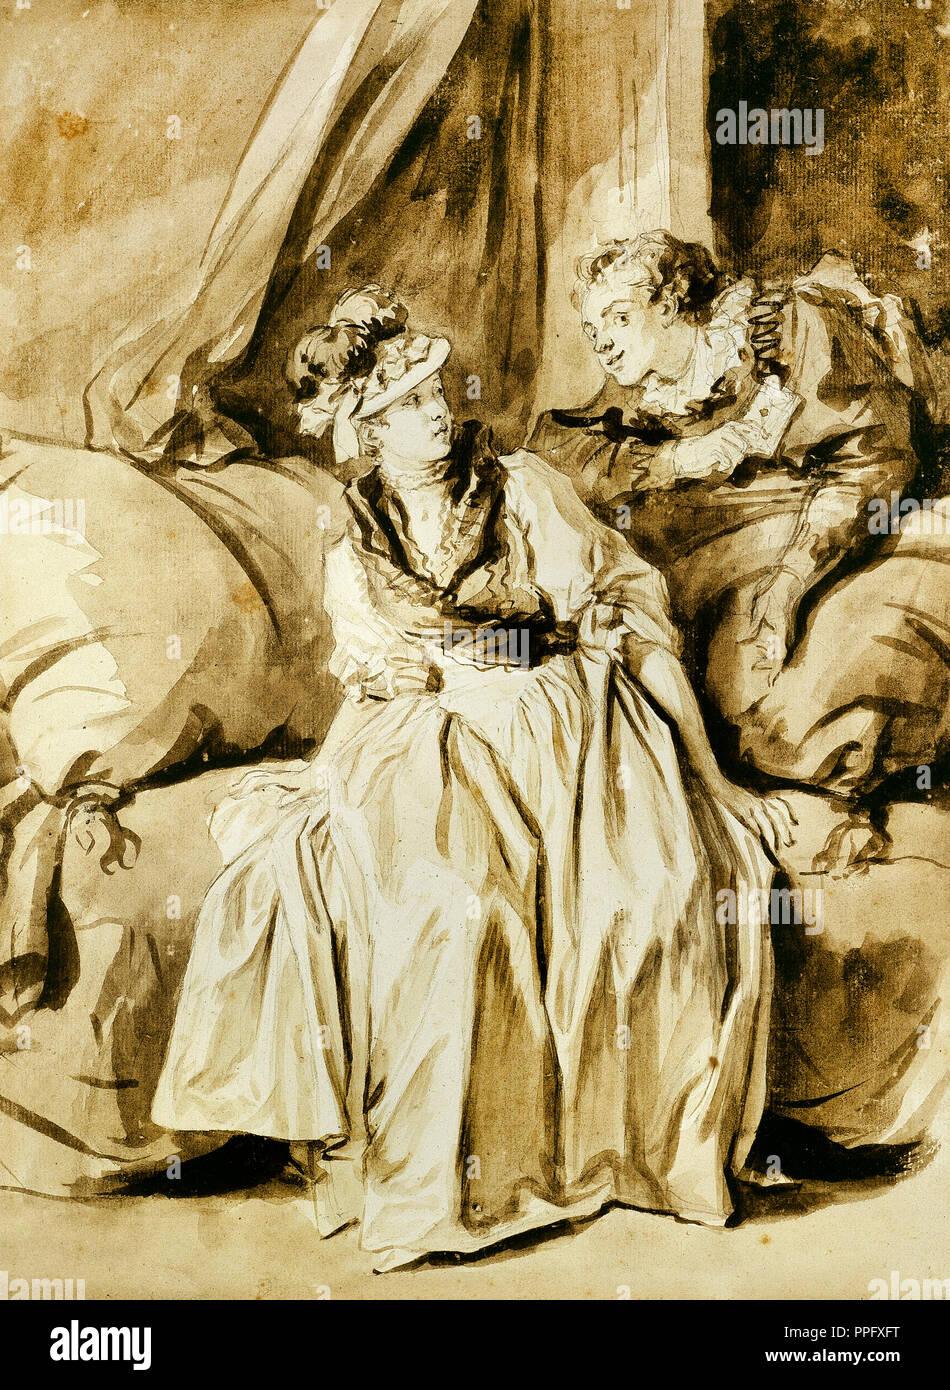 Jean-Honore Fragonard, The Letter or The Spanish Conversation. Circa 1778. Drawing and Watercolor. Art Institute of Chicago, USA Stock Photo